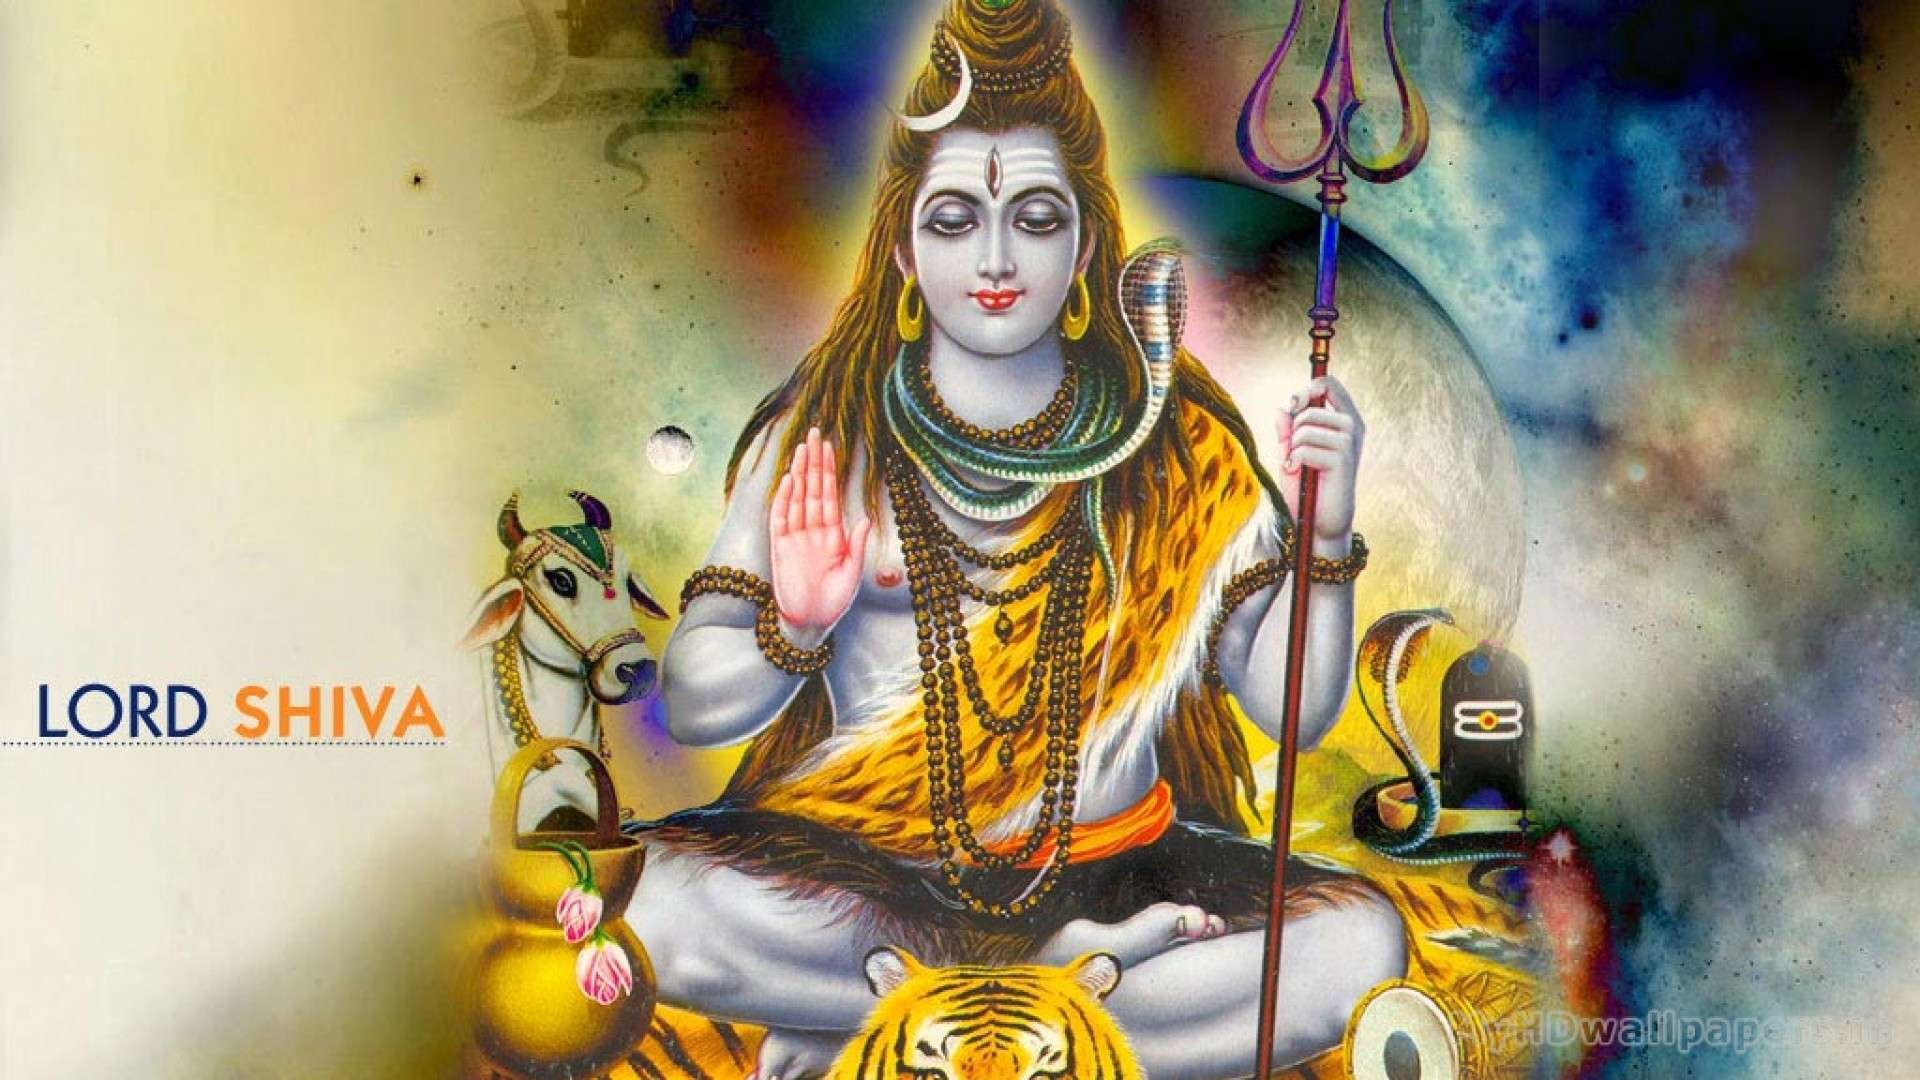 Lord Shiva Creative Hd Wallpapers For Free Download Lord: Shiva Lord Wallpapers Desktop : Hd Wallpapers